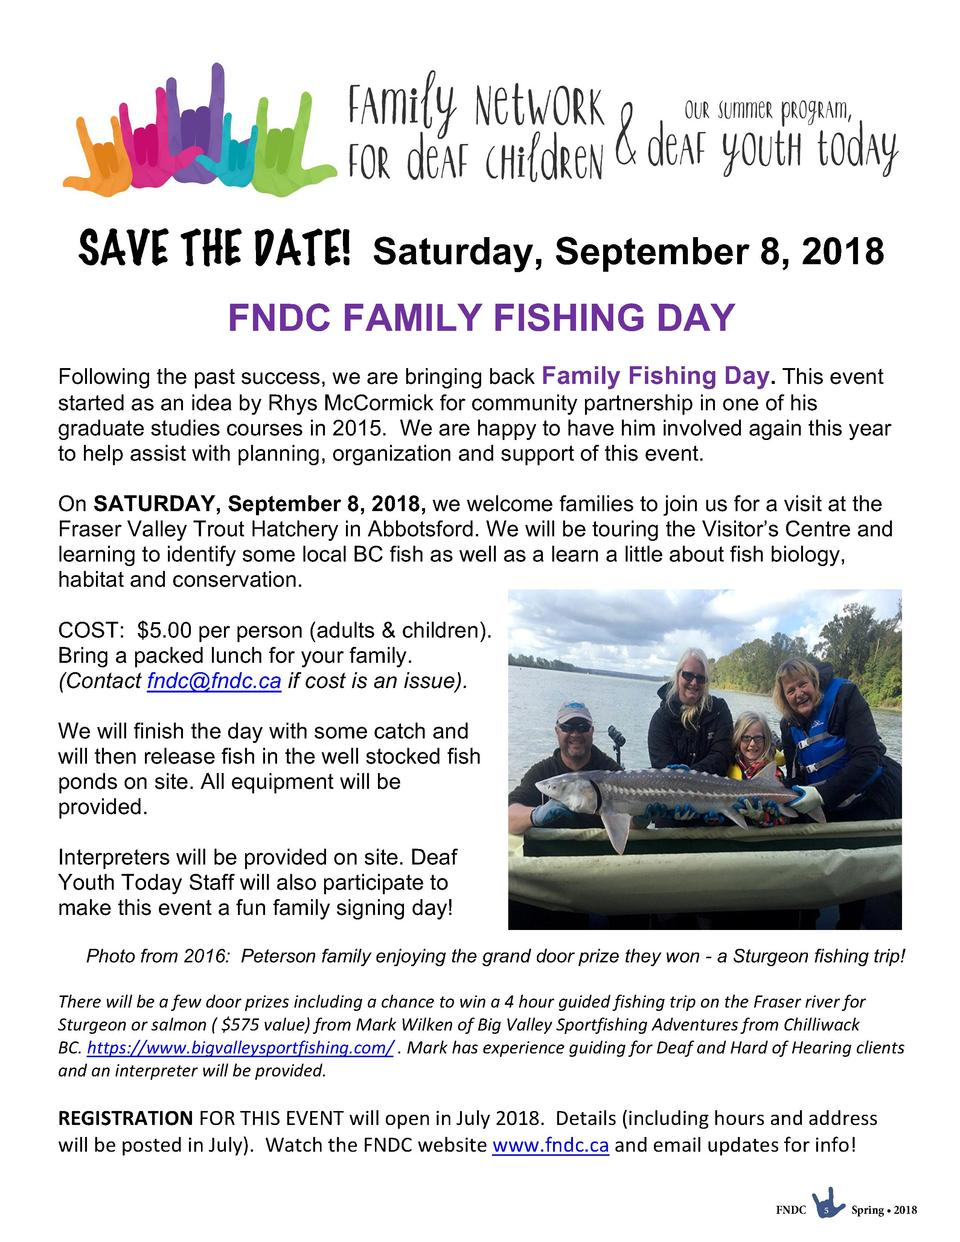 SAVE THE DATE  Saturday, September 8, 2018 FNDC FAMILY FISHING DAY Following the past success, we are bringing back Family...